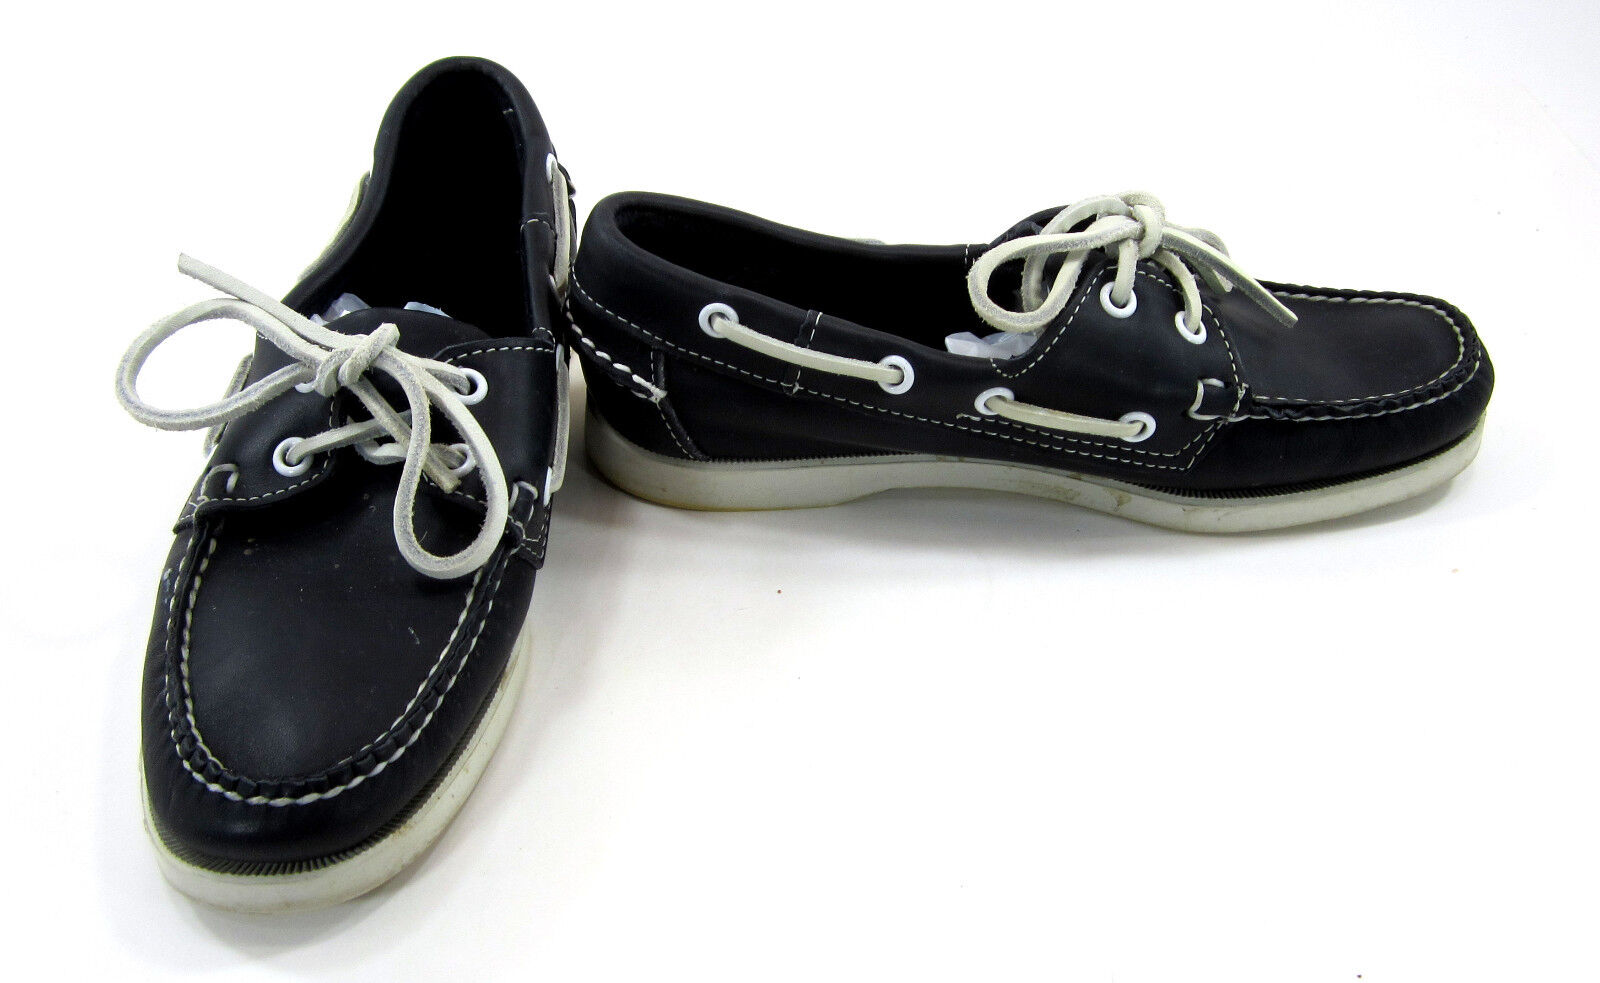 Debago Docksides Leather Lo Topsiders  noir  Boat  Chaussures  femmes  6.5